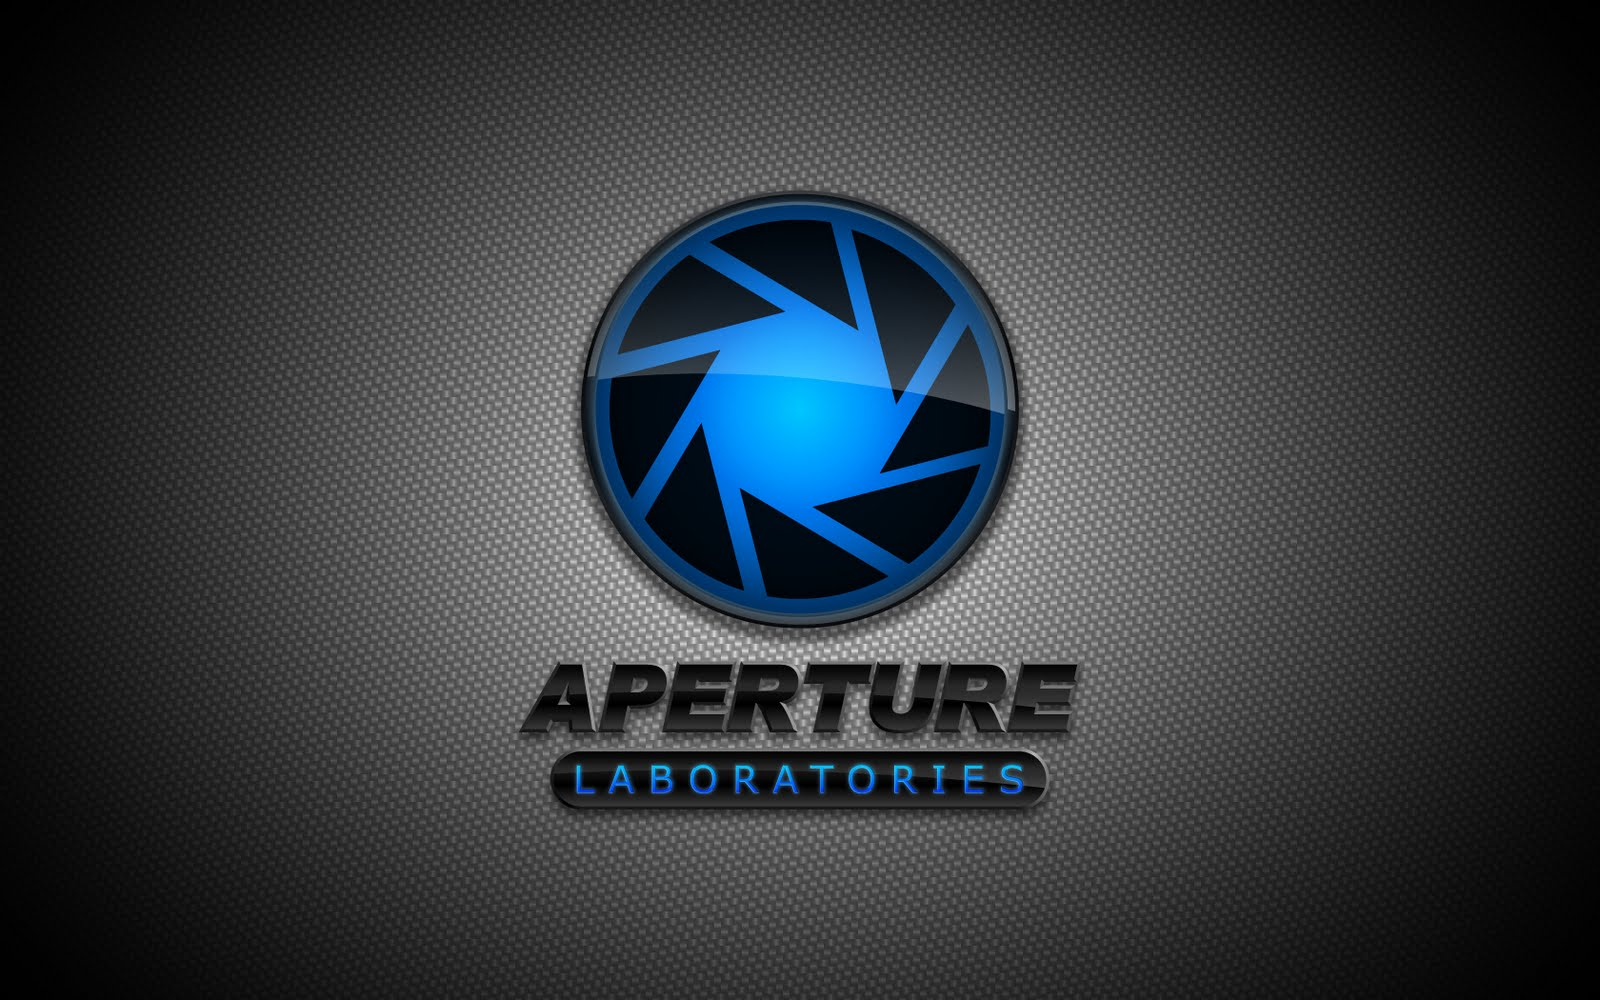 Portal 2 HD Logo Desktop Wallpapers Download Wallpapers in HD for 1600x1000